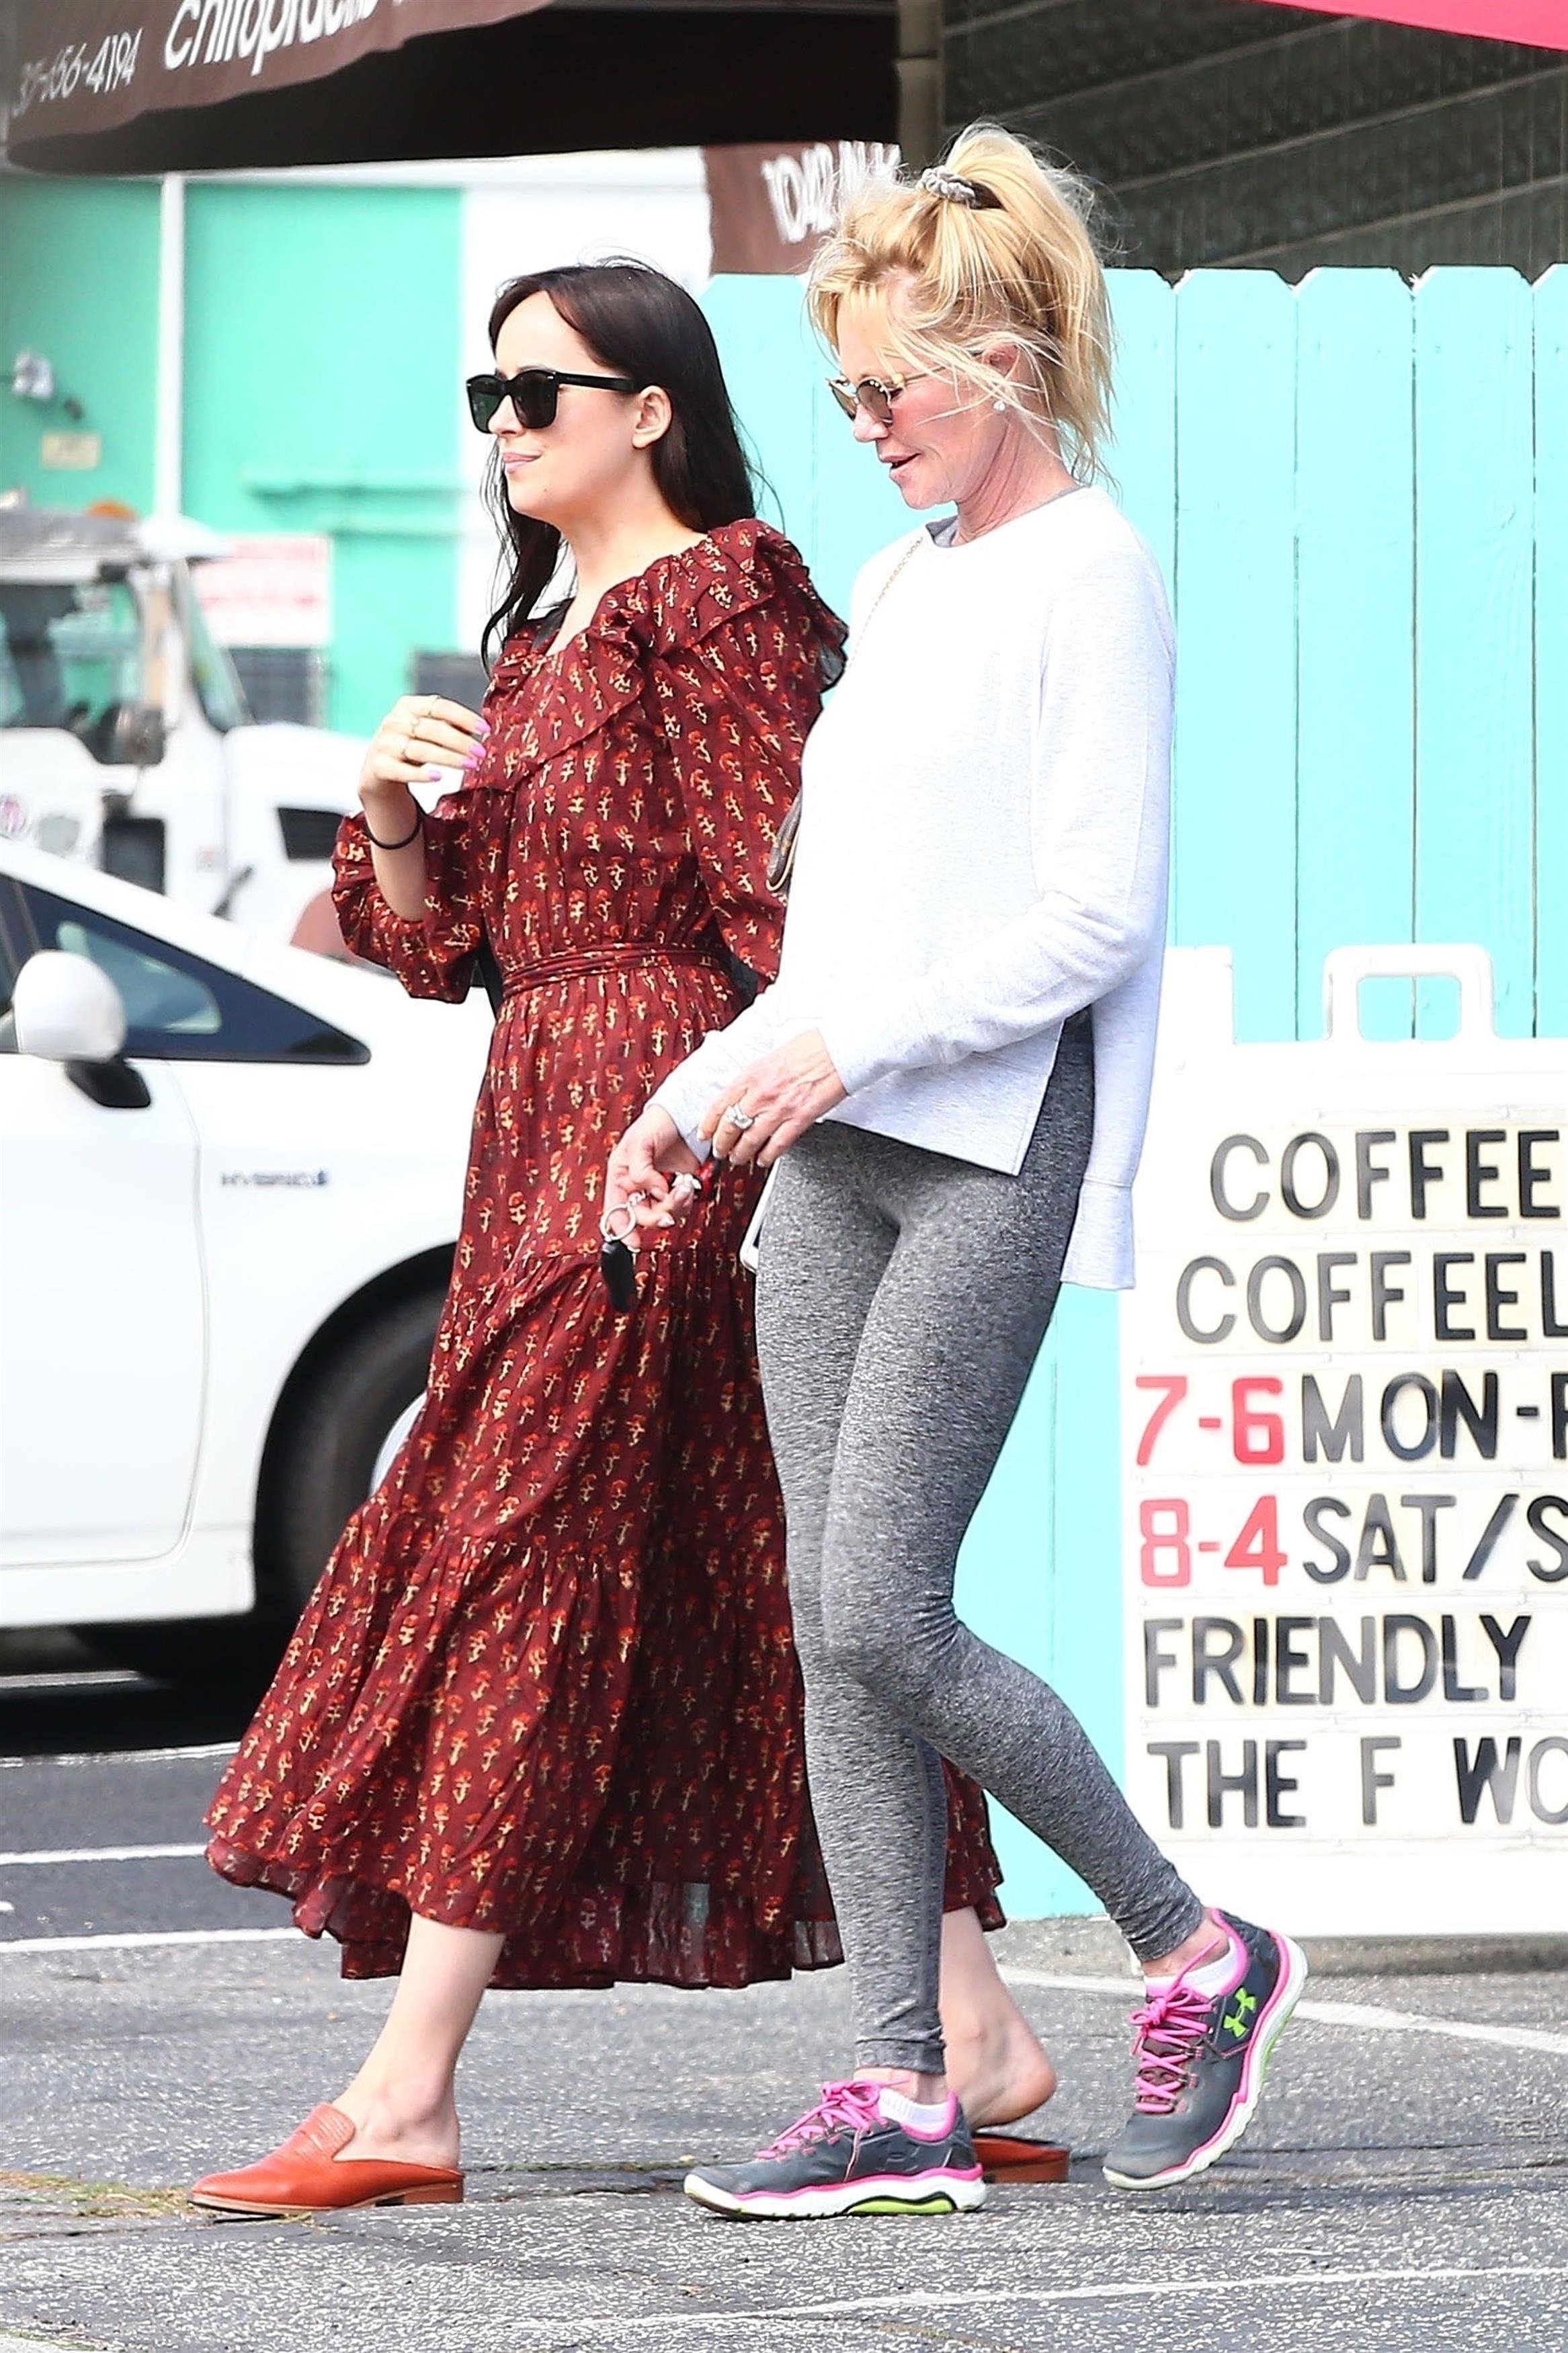 West Hollywood, CA  - *EXCLUSIVE*  - Actress Melanie Griffith and her daughter Dakota Johnson are spotted catching up over coffee in West Hollywood. The pair laughed and chatted before getting up giving each other a hug and kiss and heading on their way.  Pictured: Melanie Griffith, Dakota Johnson  BACKGRID USA 14 SEPTEMBER 2017, Image: 349403700, License: Rights-managed, Restrictions: , Model Release: no, Credit line: Profimedia, AKM-GSI